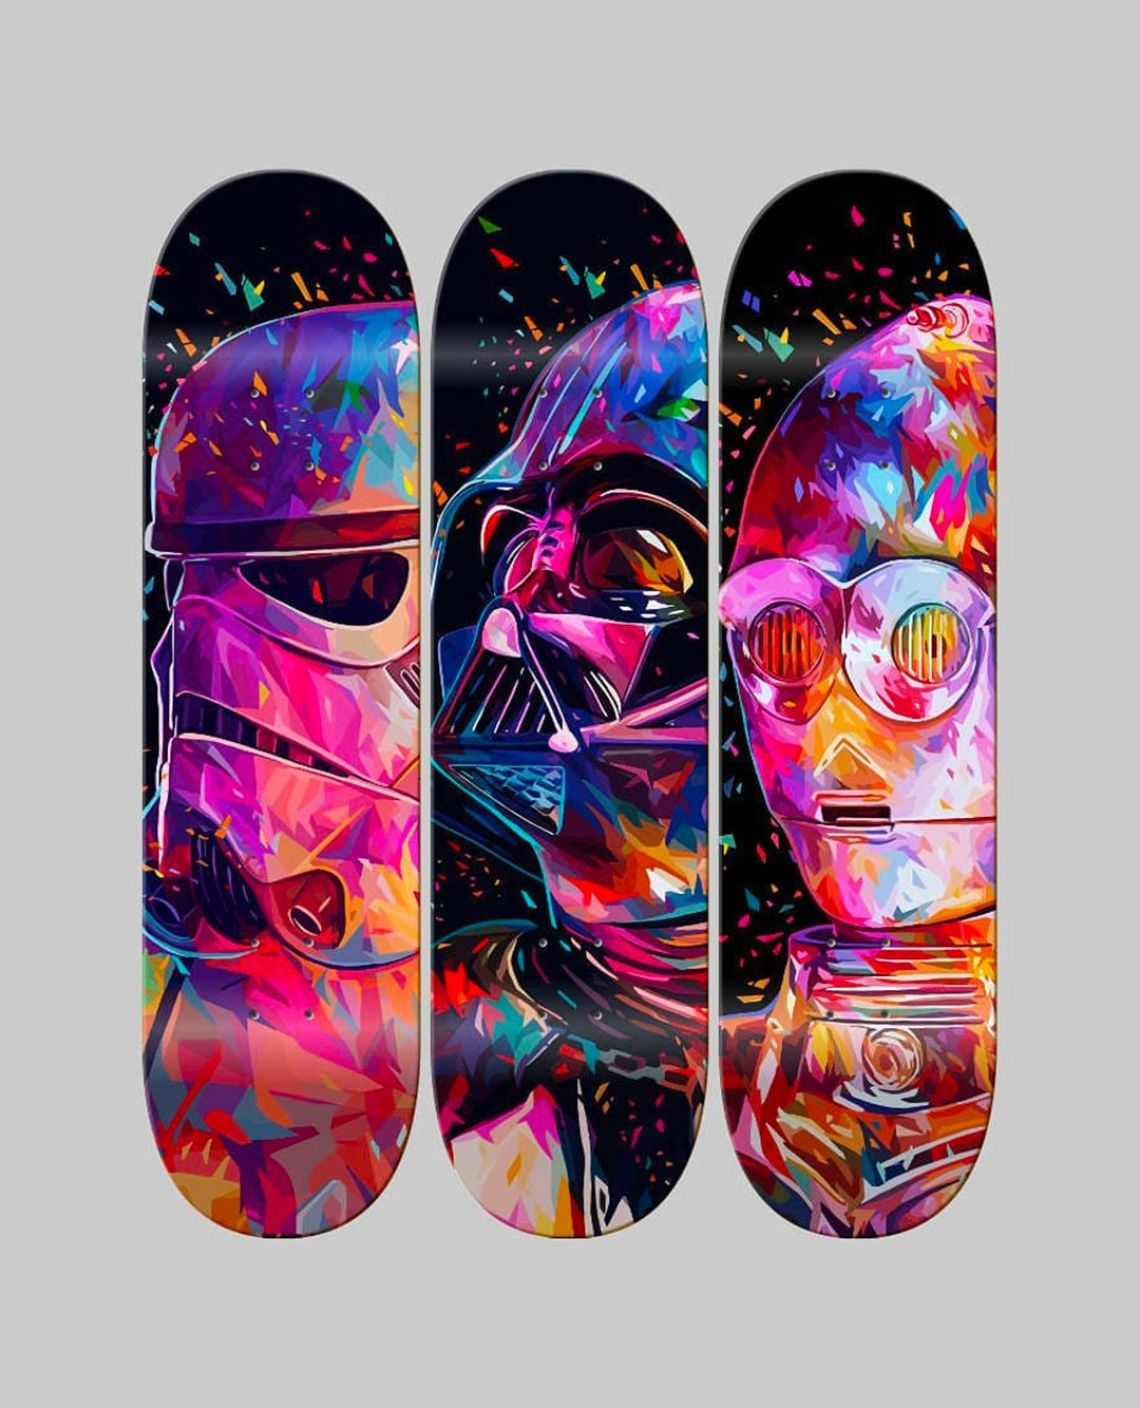 Droid Father Soldier Skateboards By Kaneda X Bonobolabo 1